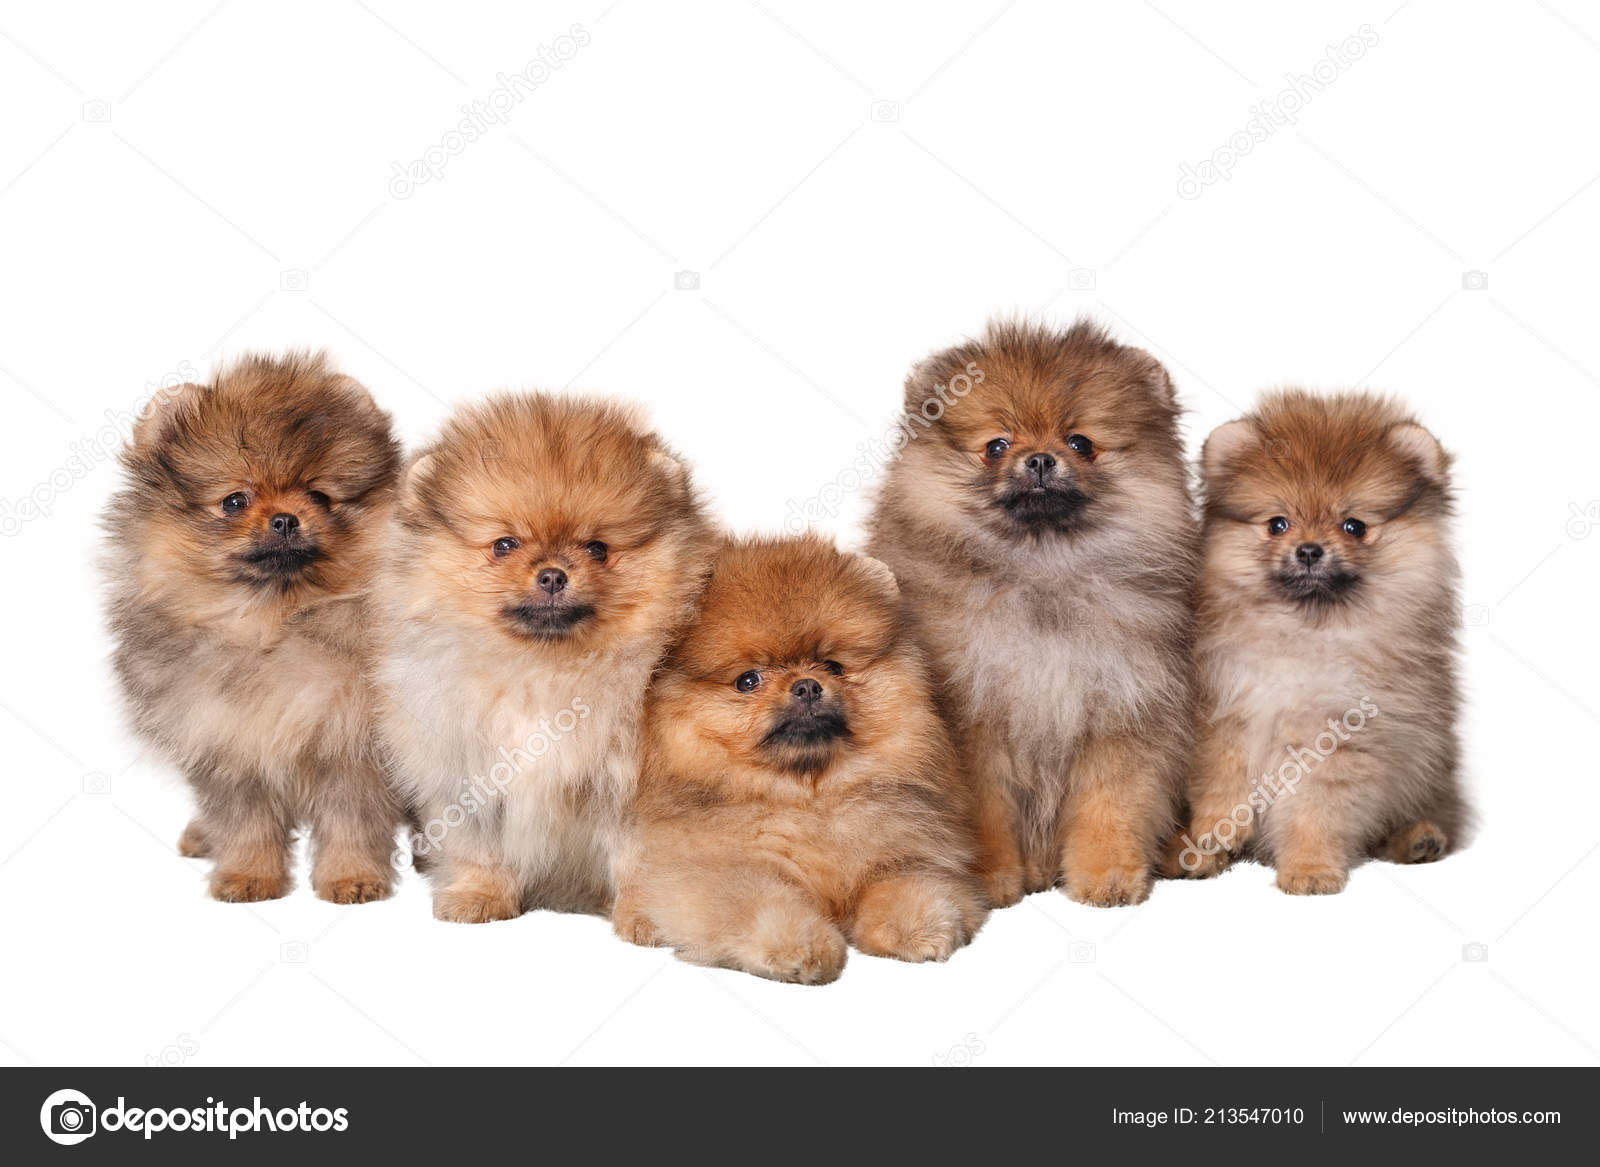 Cute Puppies Fluffy Five Fun Cute Fluffy Puppies Spitz Sitting White Isolated Background Stock Photo C Pnk68 213547010